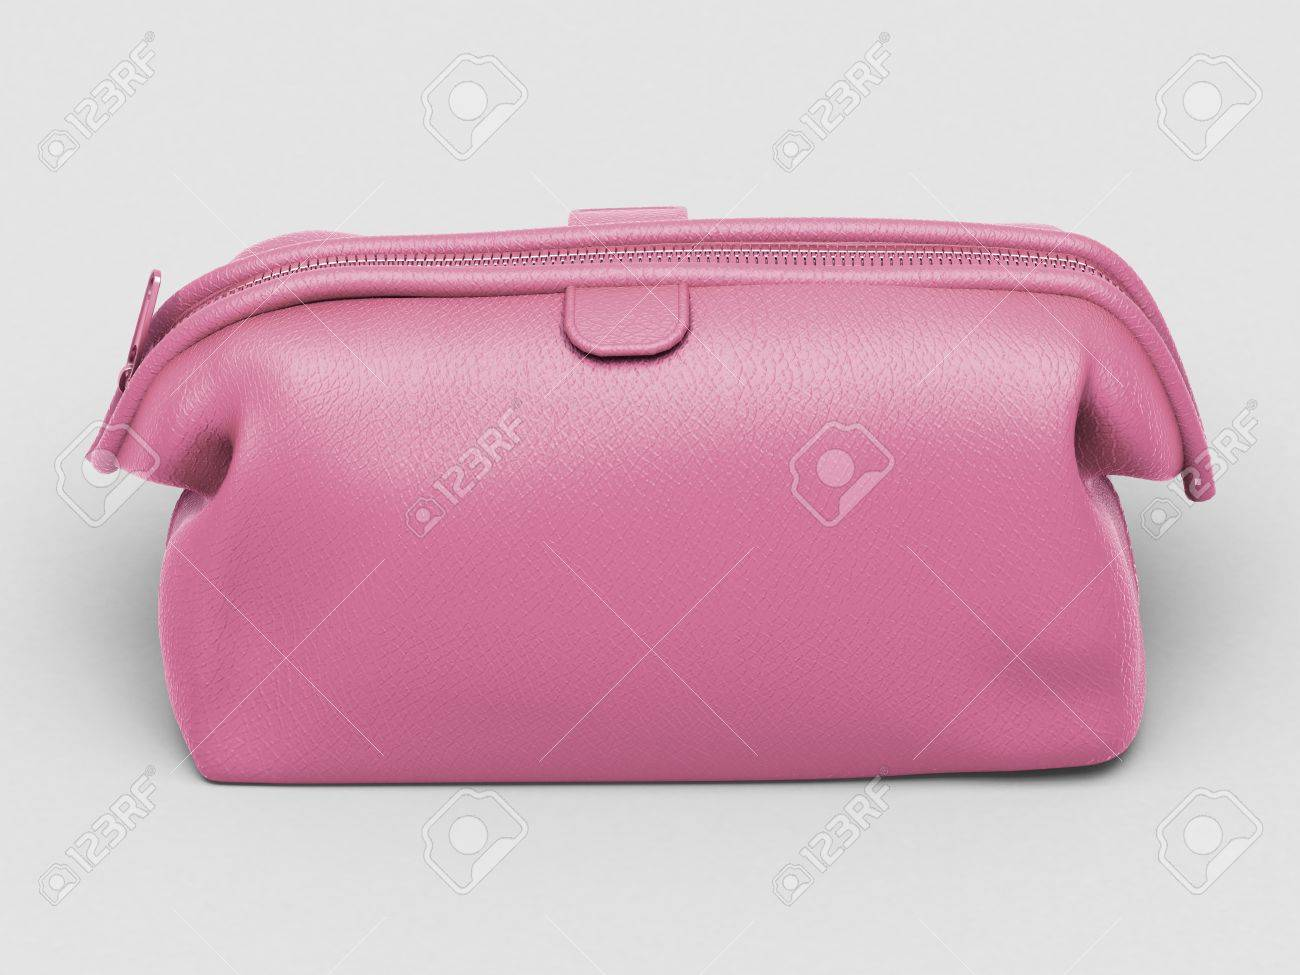 Pink leather clutch closeup on a light background Stock Photo - 17476140